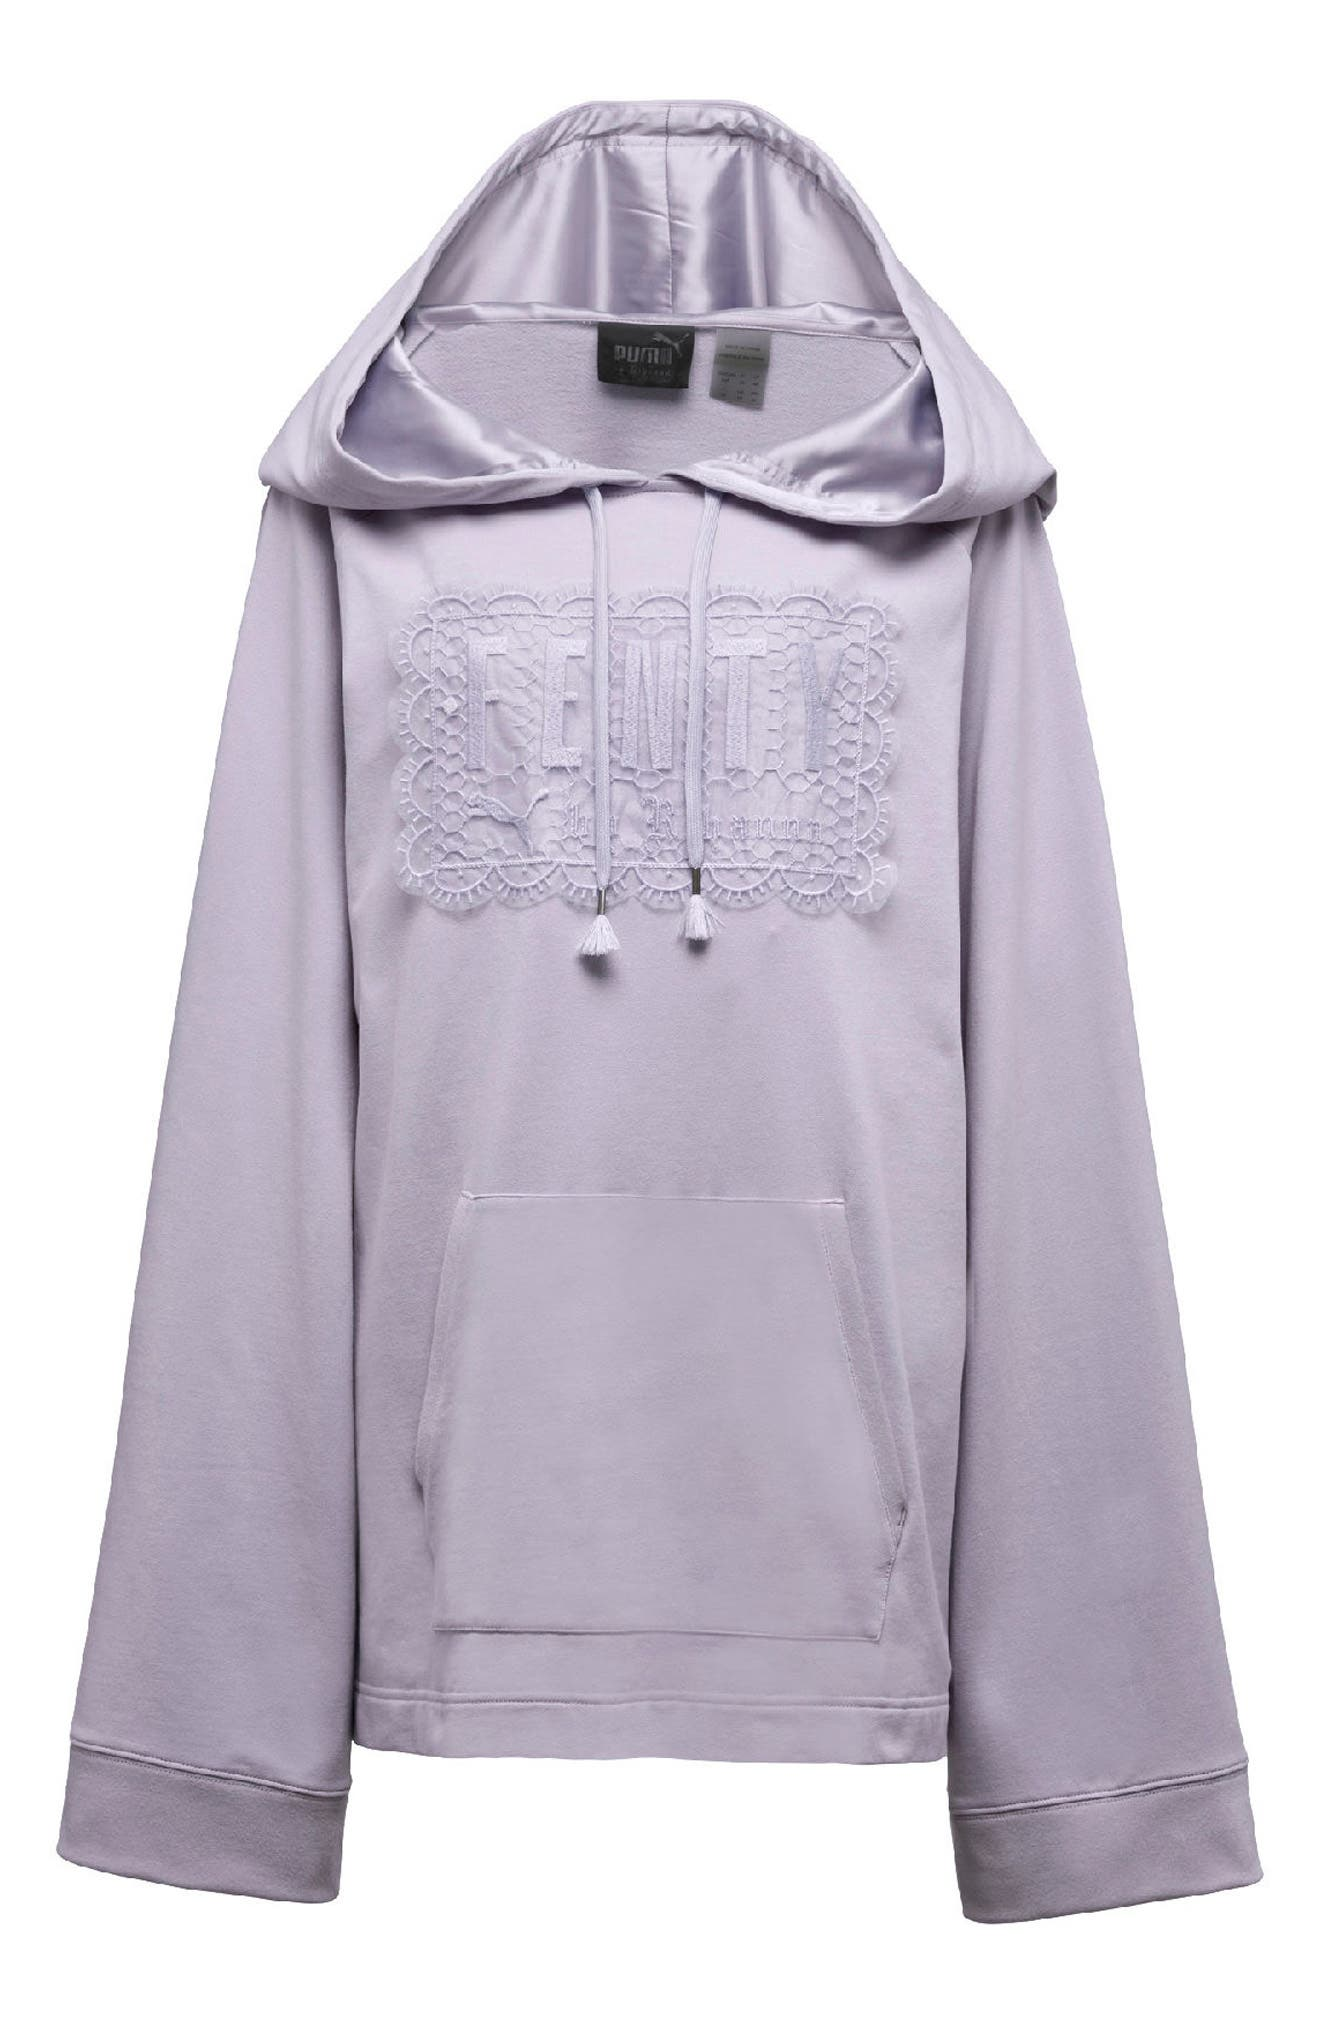 FENTY PUMA by Rihanna Lace Hoodie,                             Alternate thumbnail 5, color,                             500